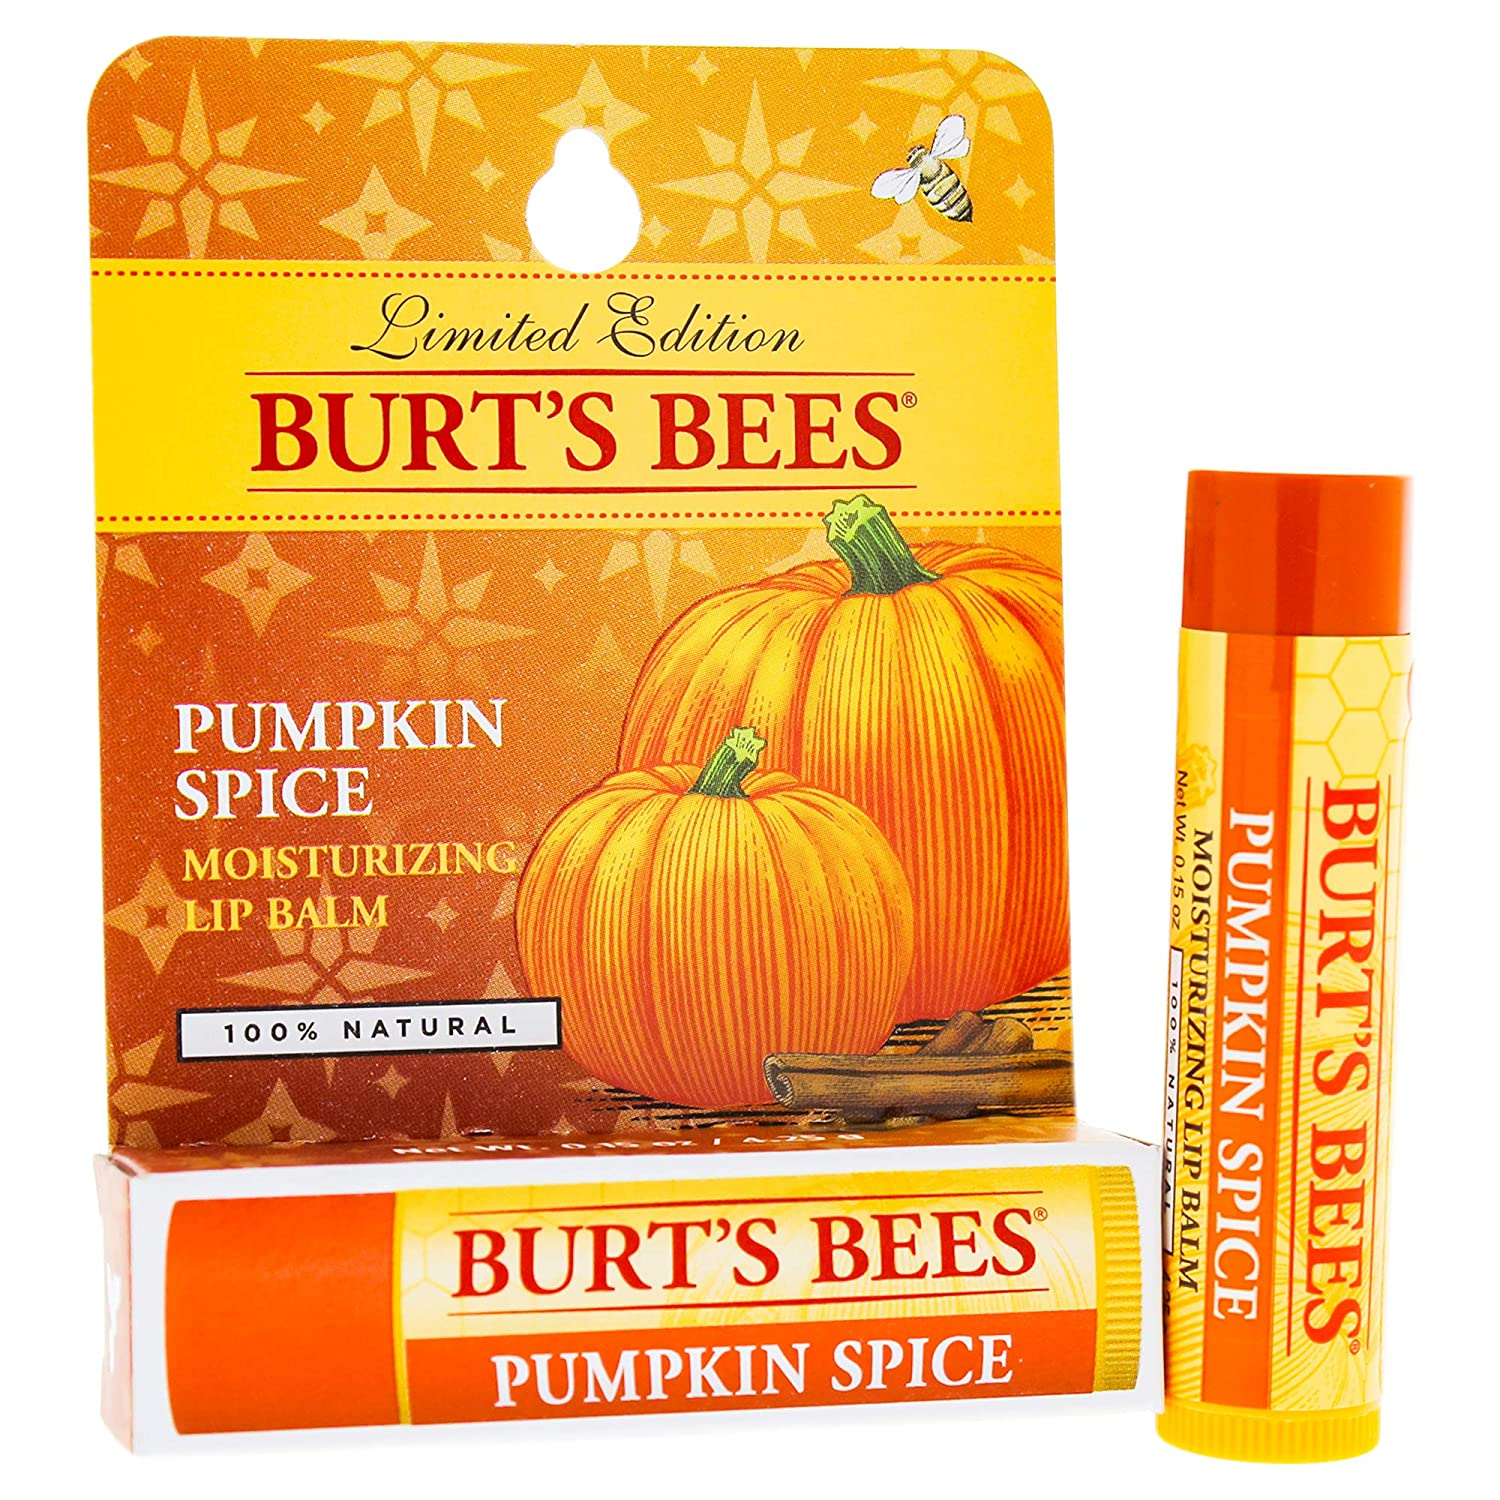 Burt's Bees Limited Edition Mint Cocoa Moisturizing Lip Balm 0.15 oz by Burt's Bees B017AC33O0